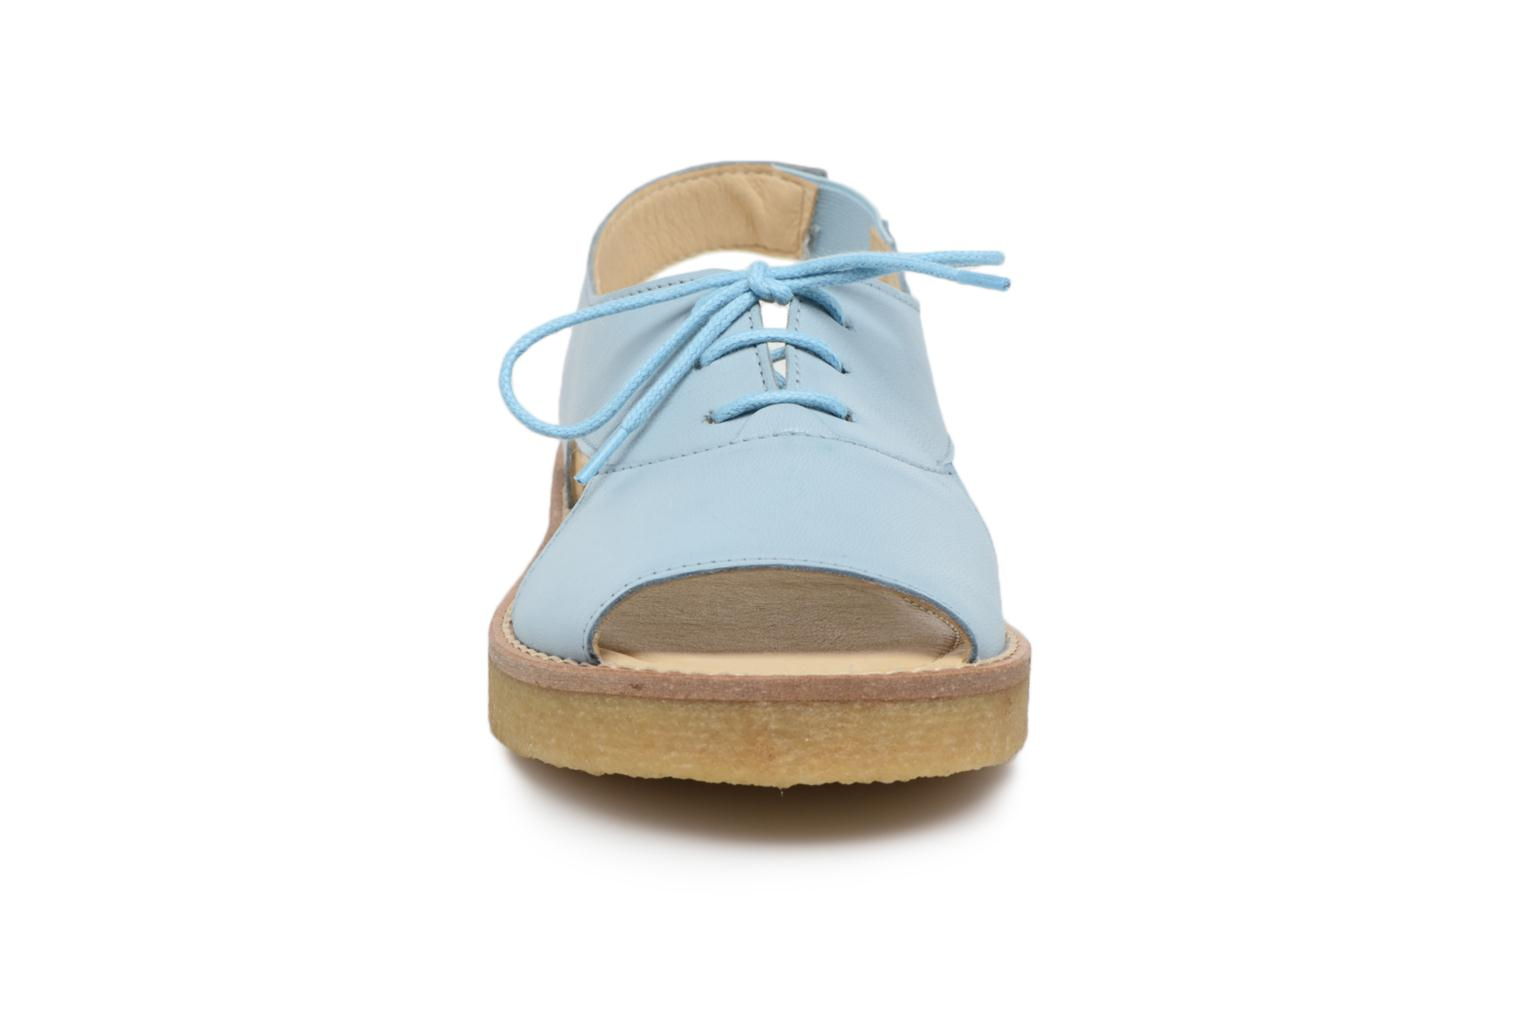 Crepe sandals sandals Tinycottons Tinycottons Ciel Crepe lace Crepe Crepe lace Ciel Tinycottons lace Tinycottons Ciel sandals HRfnUxASUq